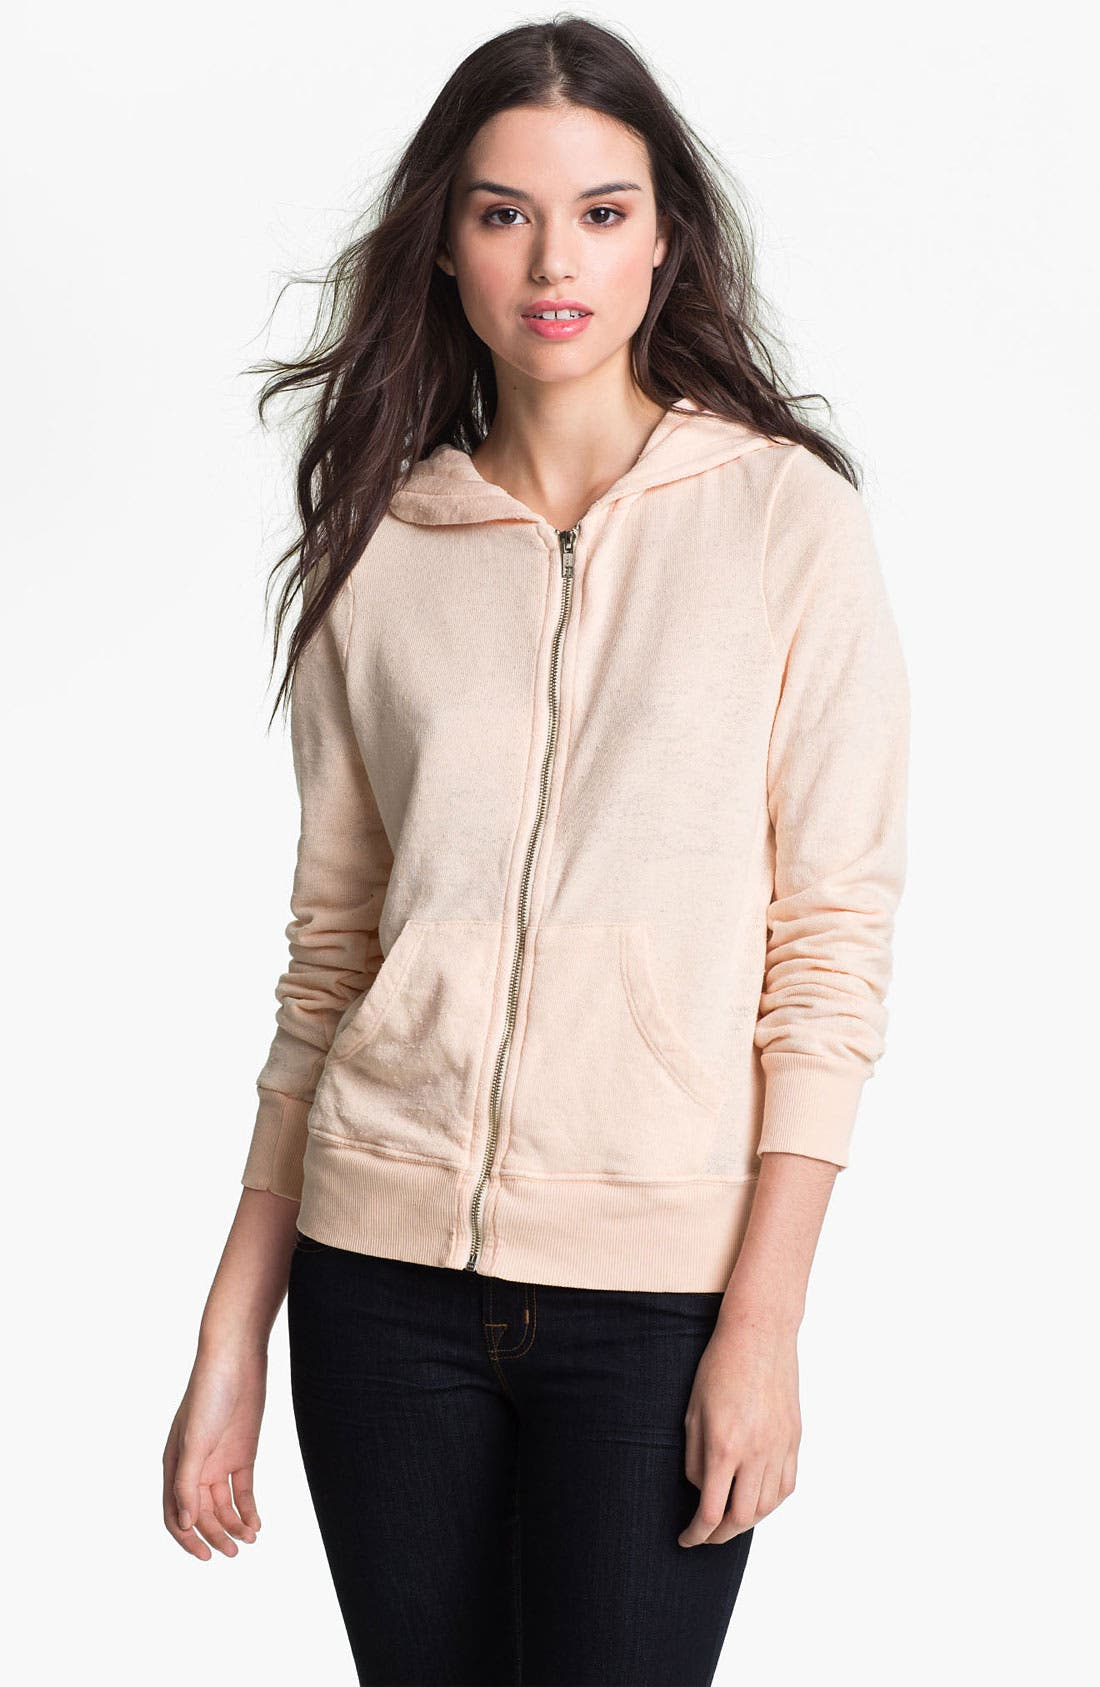 Alternate Image 1 Selected - Wildfox 'Wildest Heart' Graphic Hoodie